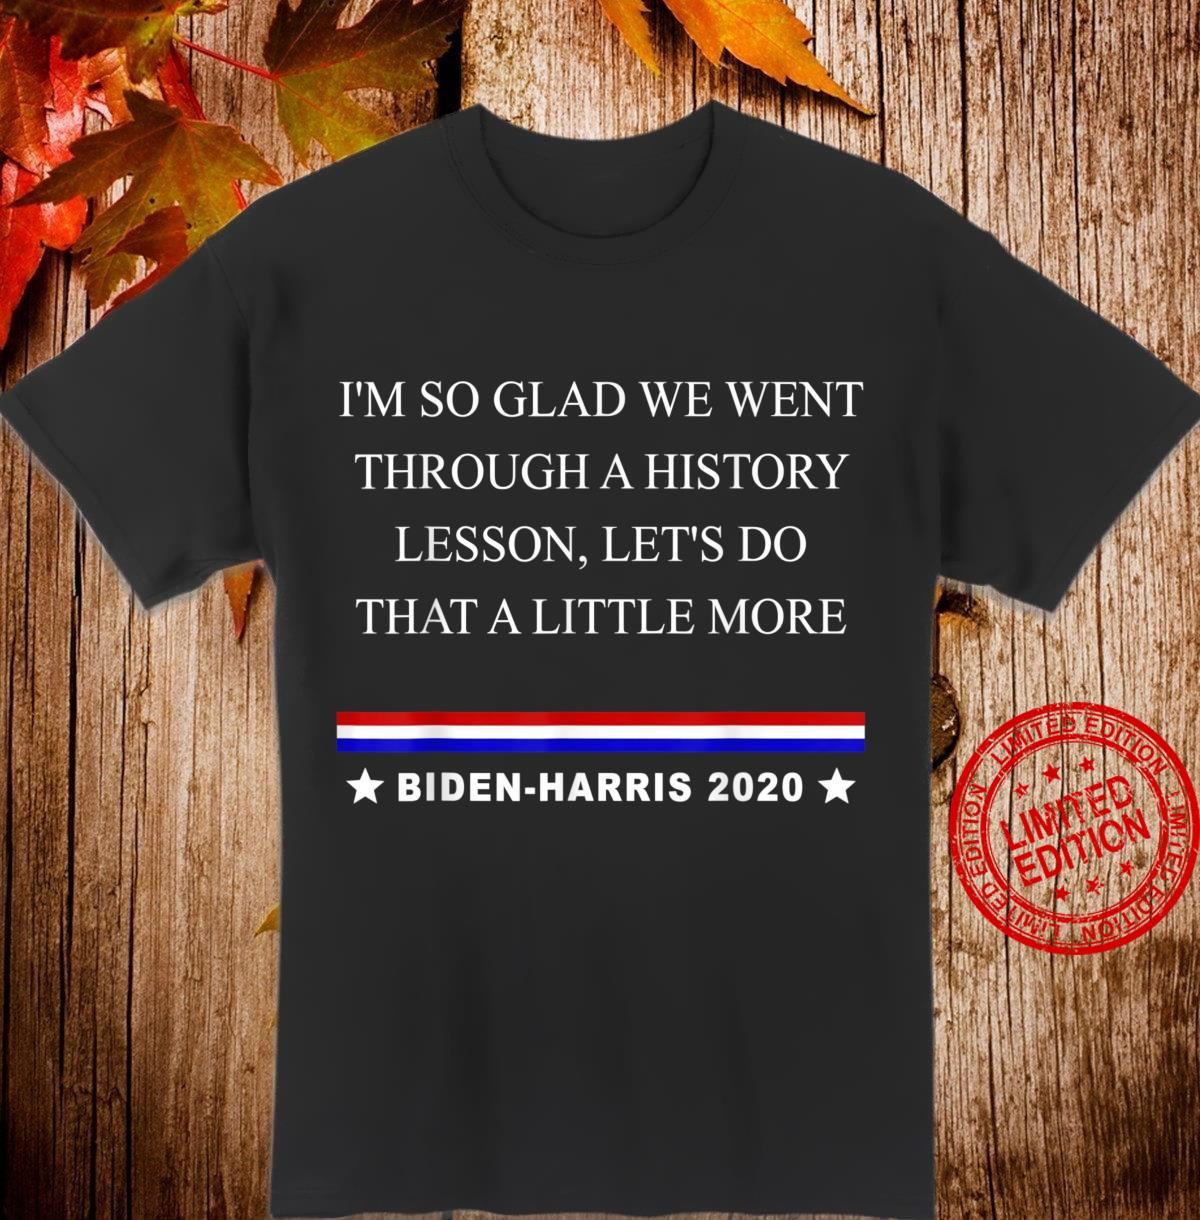 I'M SO GLAD WE WENT THROUGH A HISTORY LESSON DO LITTLE MORE Shirt